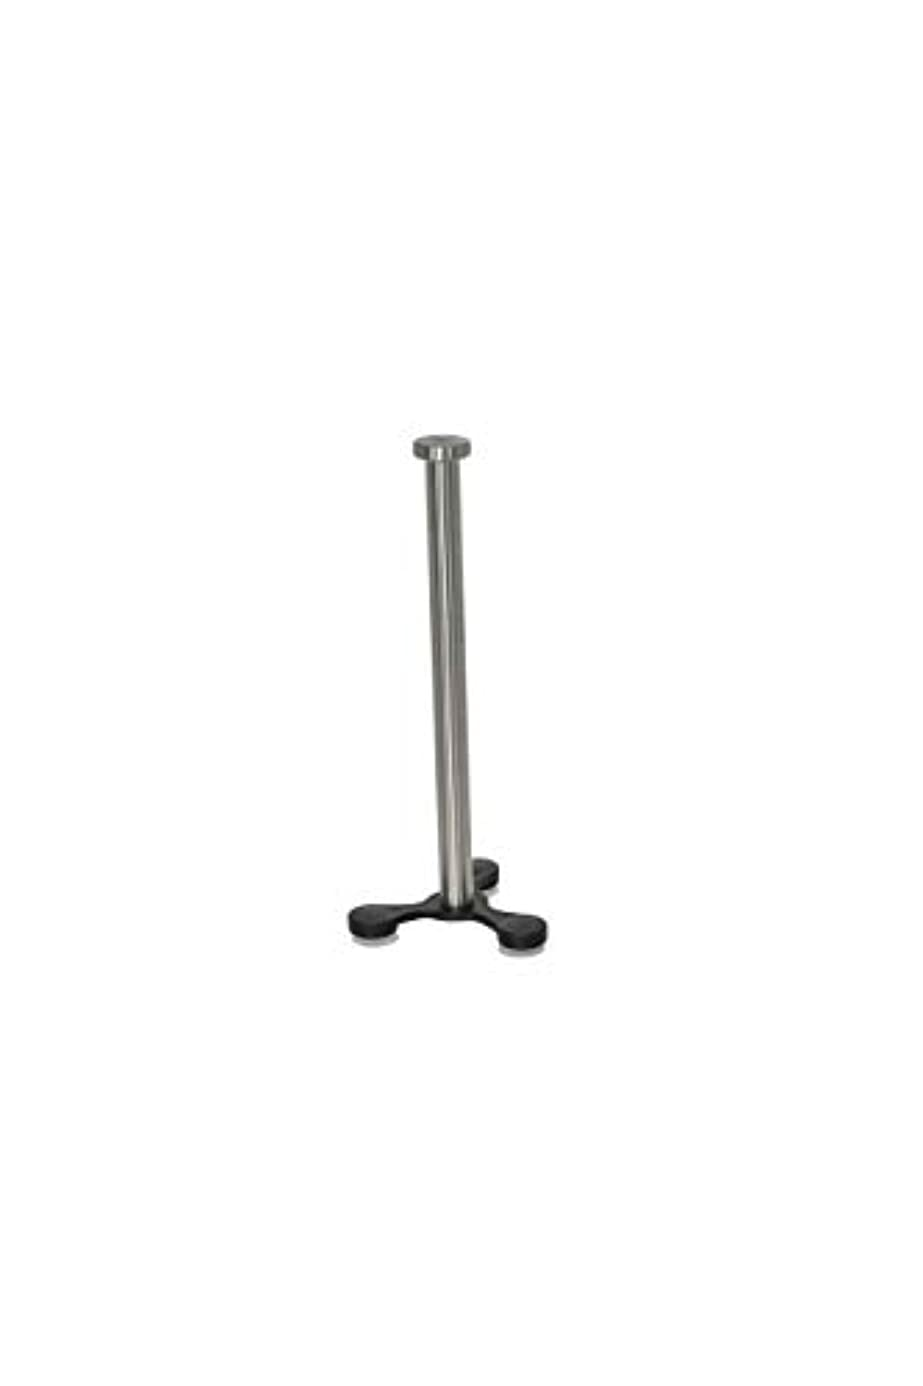 Home-X - Upright Suction Cup Countertop Stainless Steel Paper Towel Holder | Fits All Roll Sizes, Grips Tightly to Smooth Surfaces ymu3171821